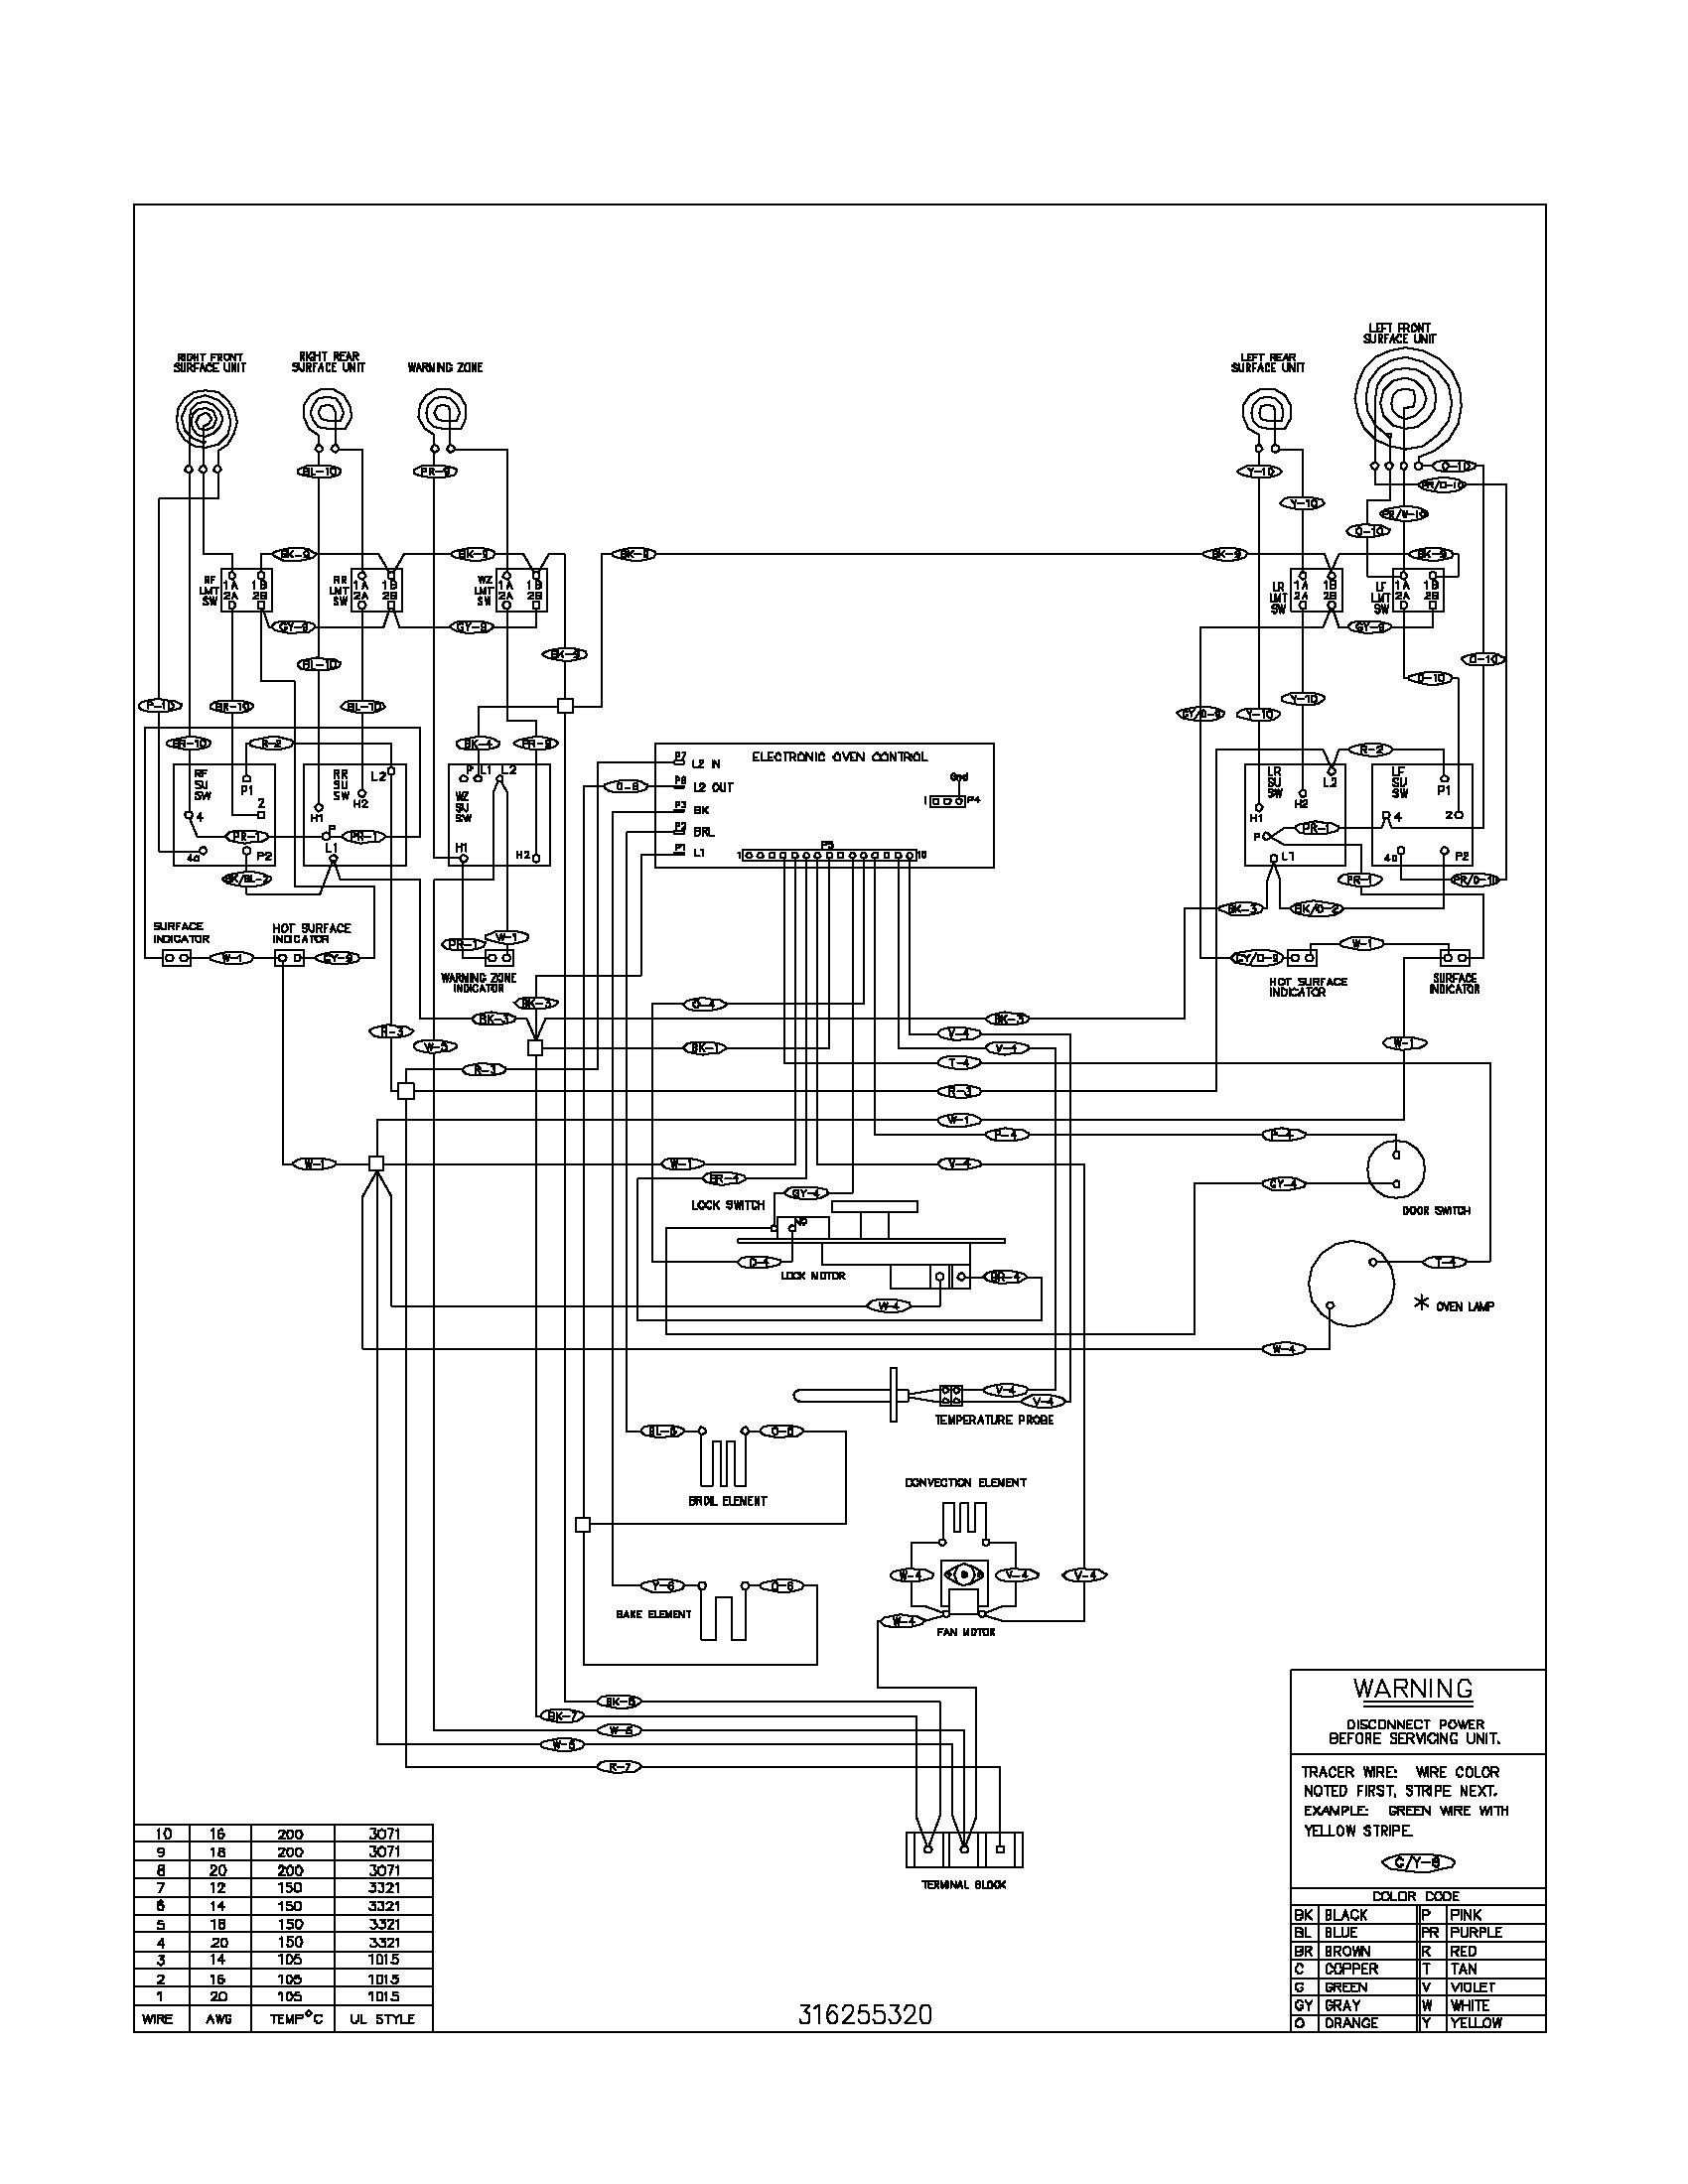 Wiring Diagram For Frigidaire Oven